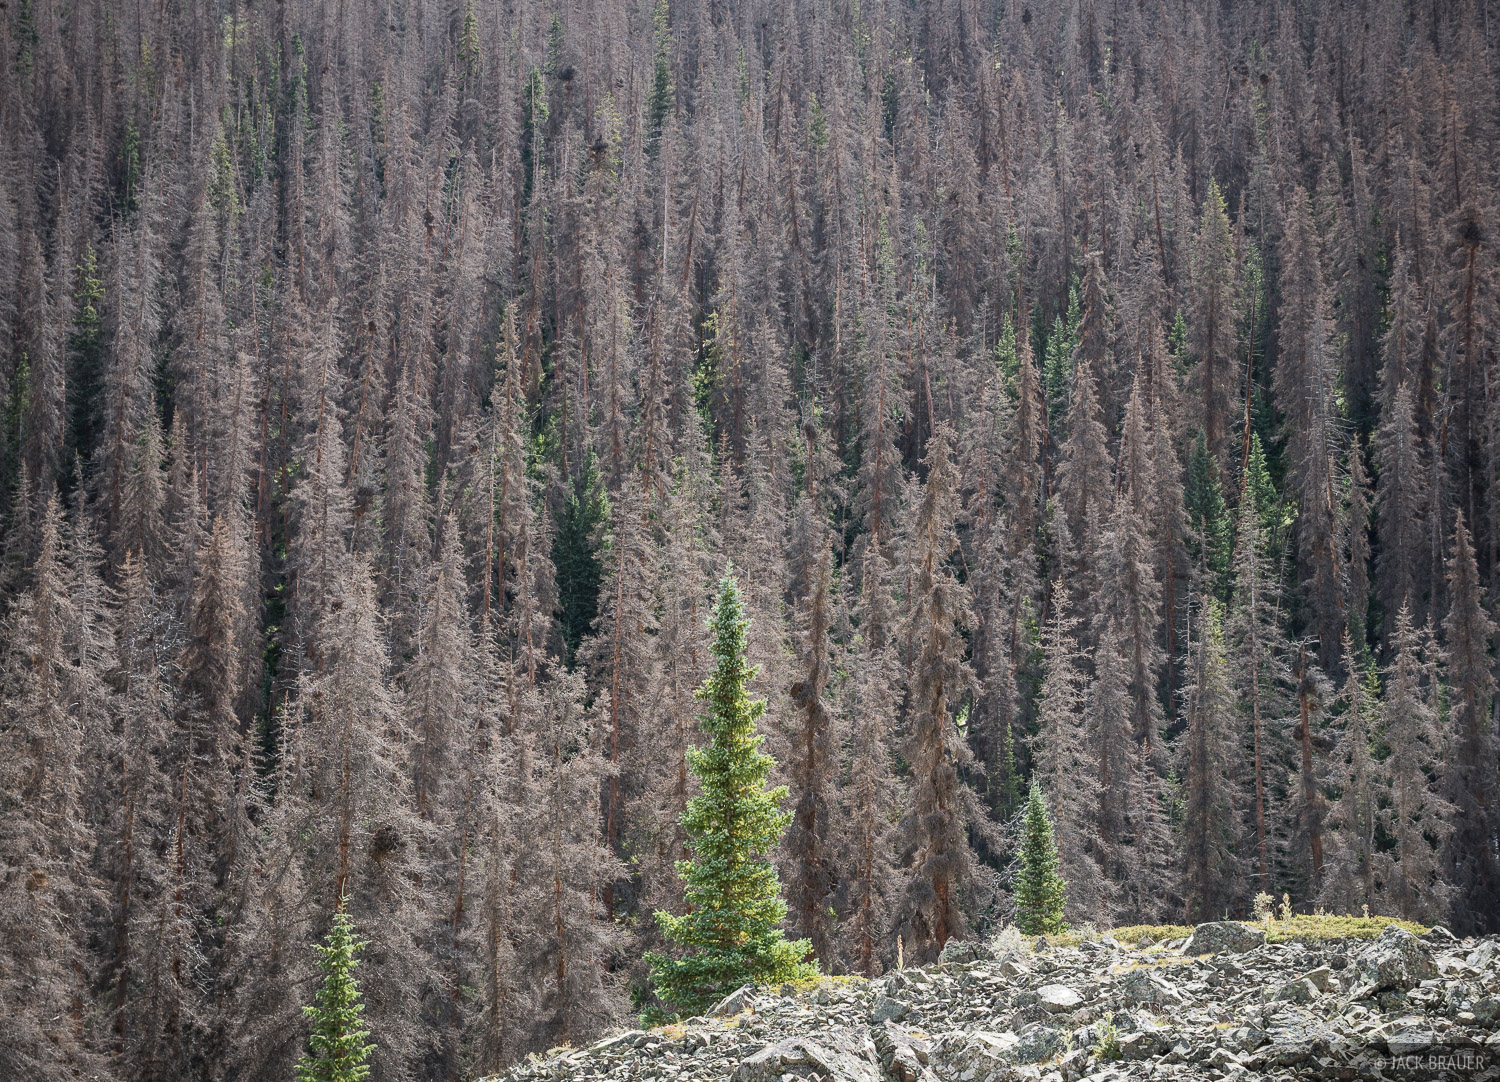 In the last decade the forests of the eastern San Juans have been devasted by pine beetle kill. Pine beetles burrow under the...